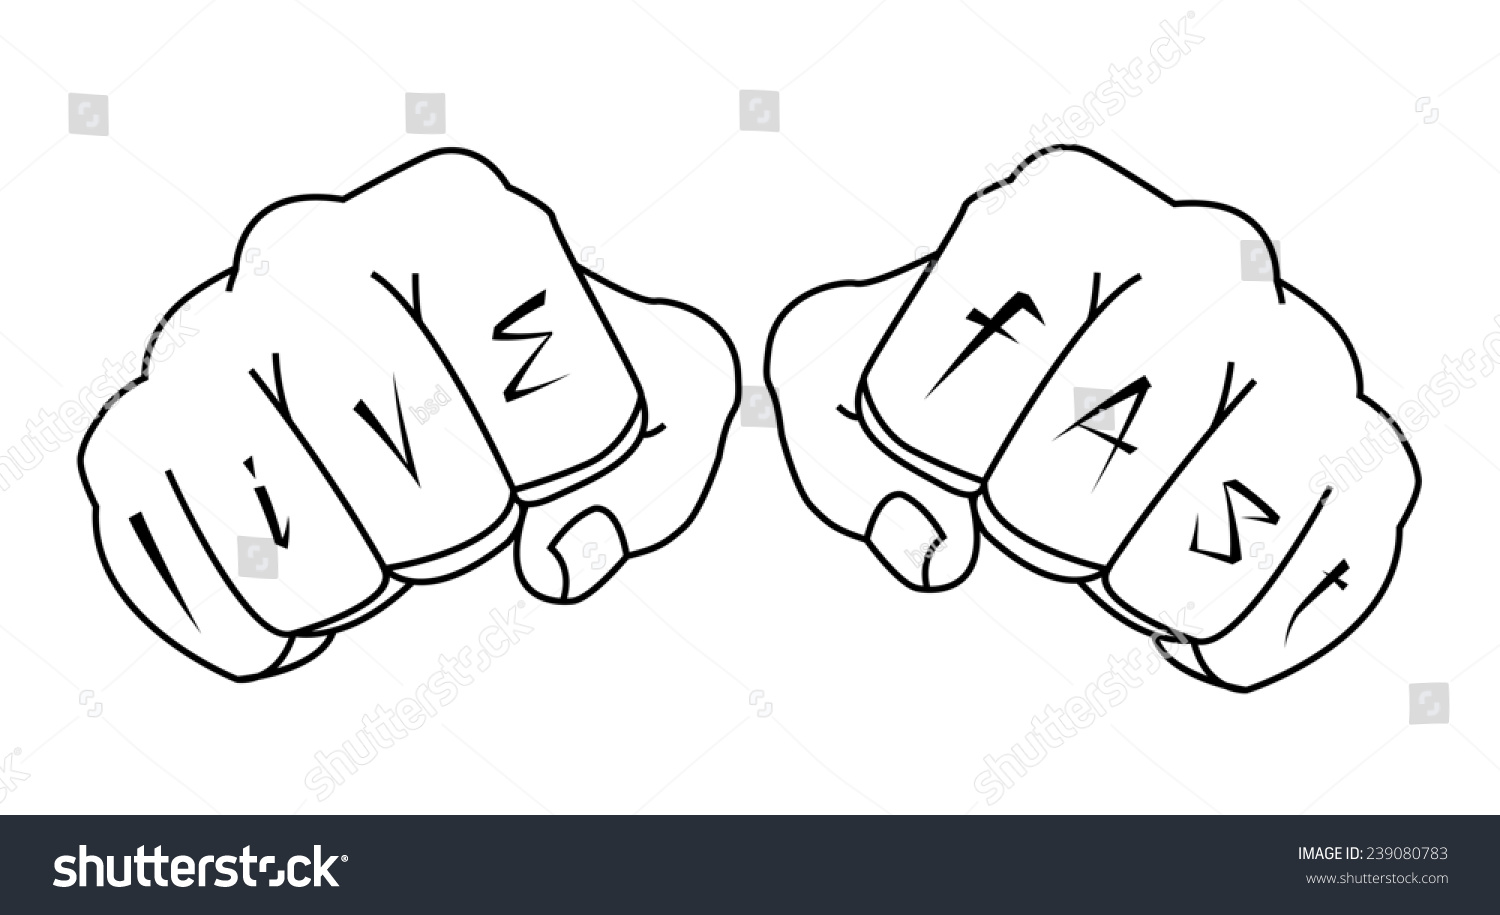 bdd4da6e0 Fists with live fast fingers tattoo. Man hands outlines raster illustration  isolated on white #